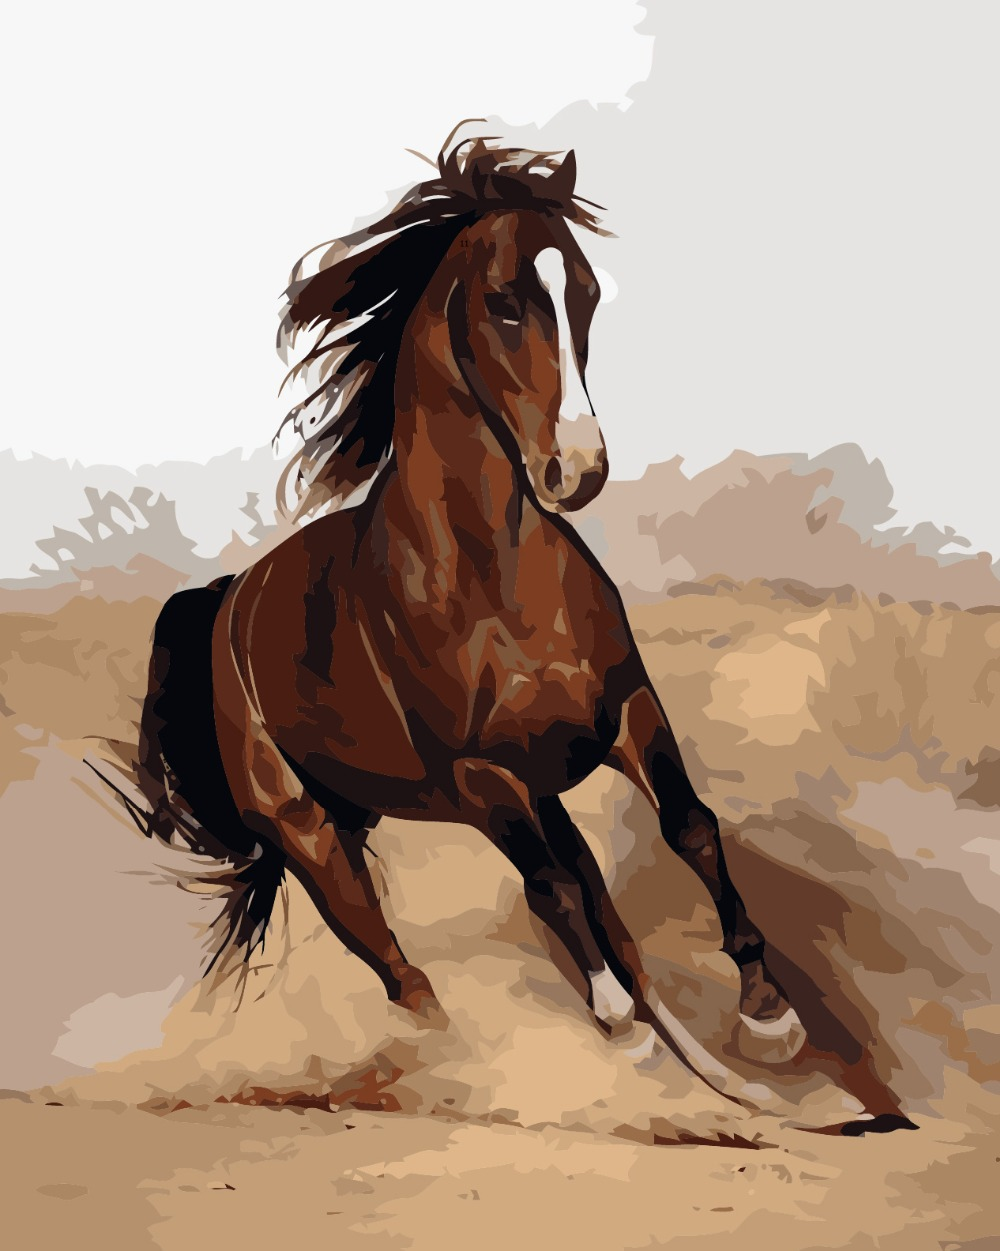 How To Paint Horse Hair With Acrylic